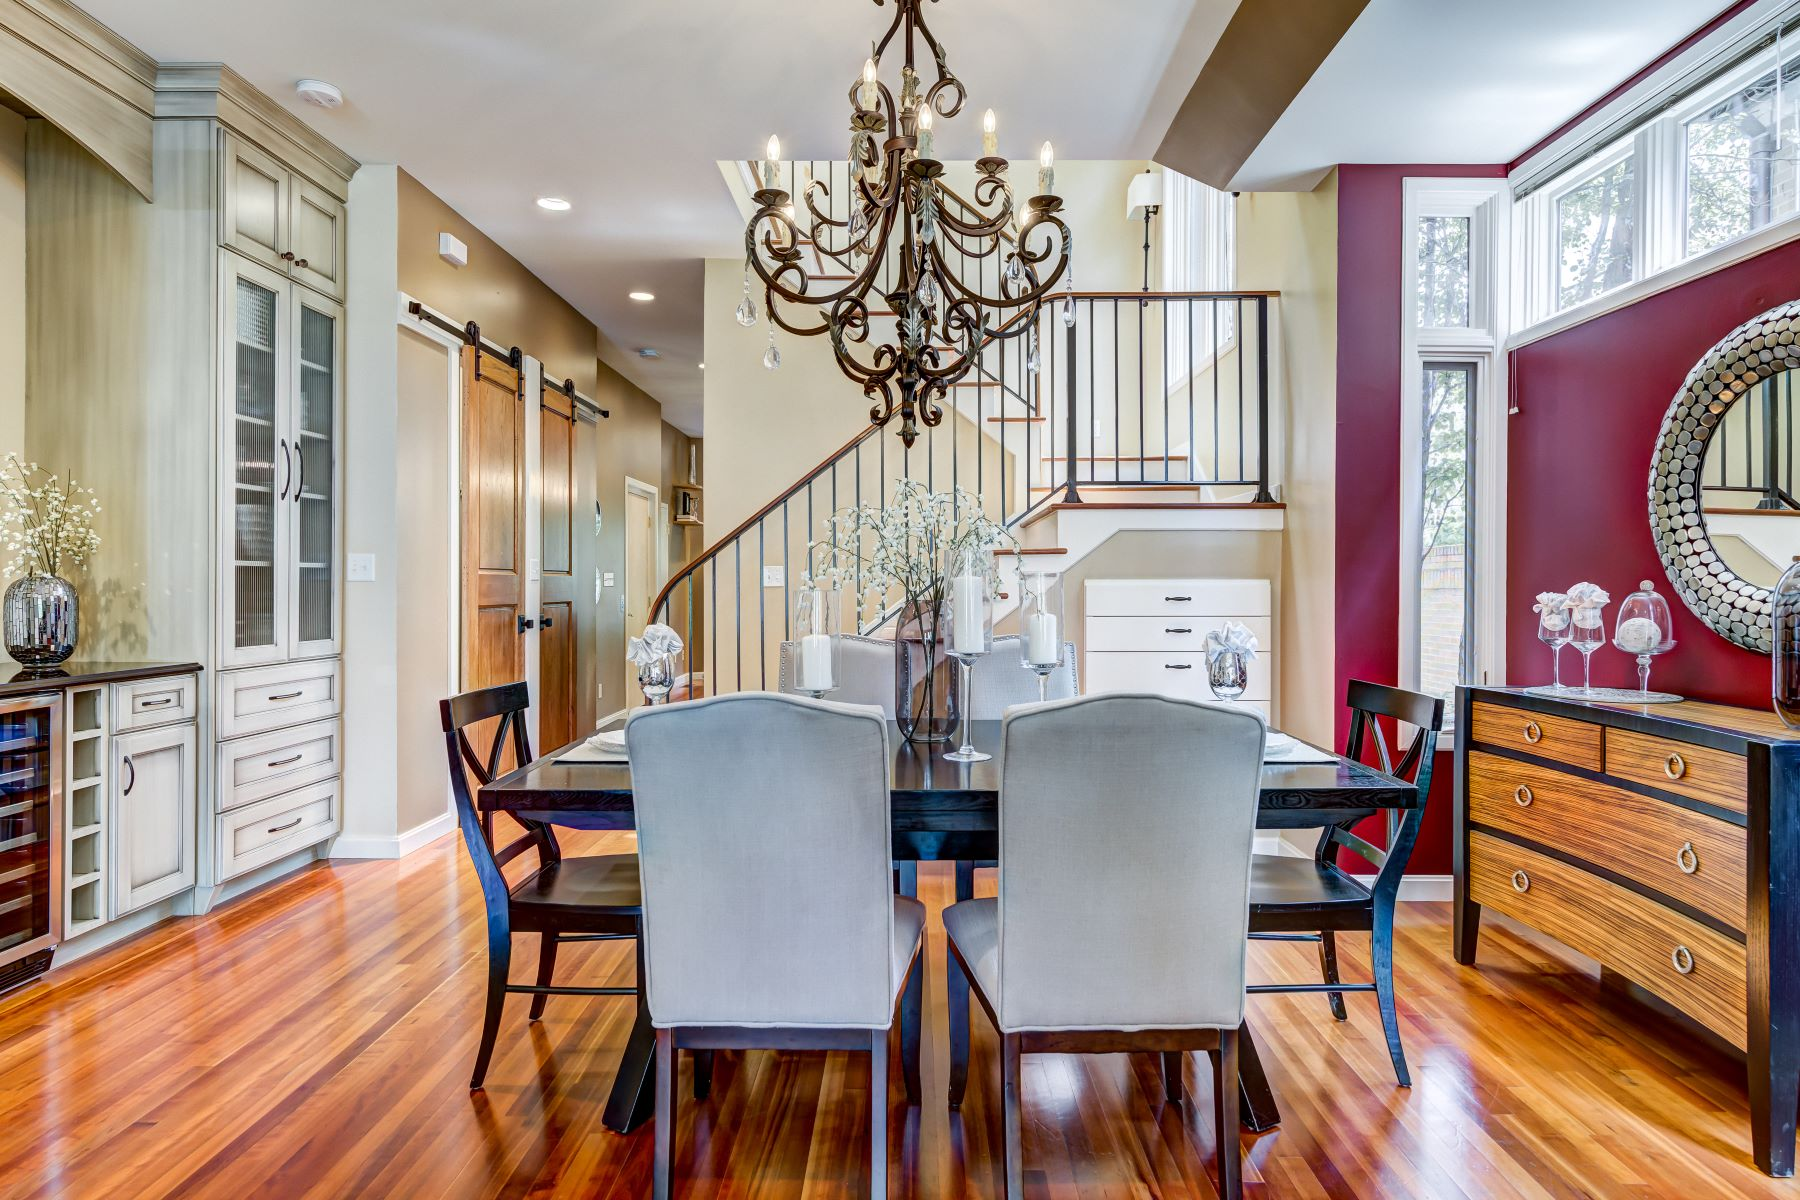 Additional photo for property listing at Sophisticated townhome in the heart of Clayton. 340 North Central Avenue St. Louis, Missouri 63105 United States